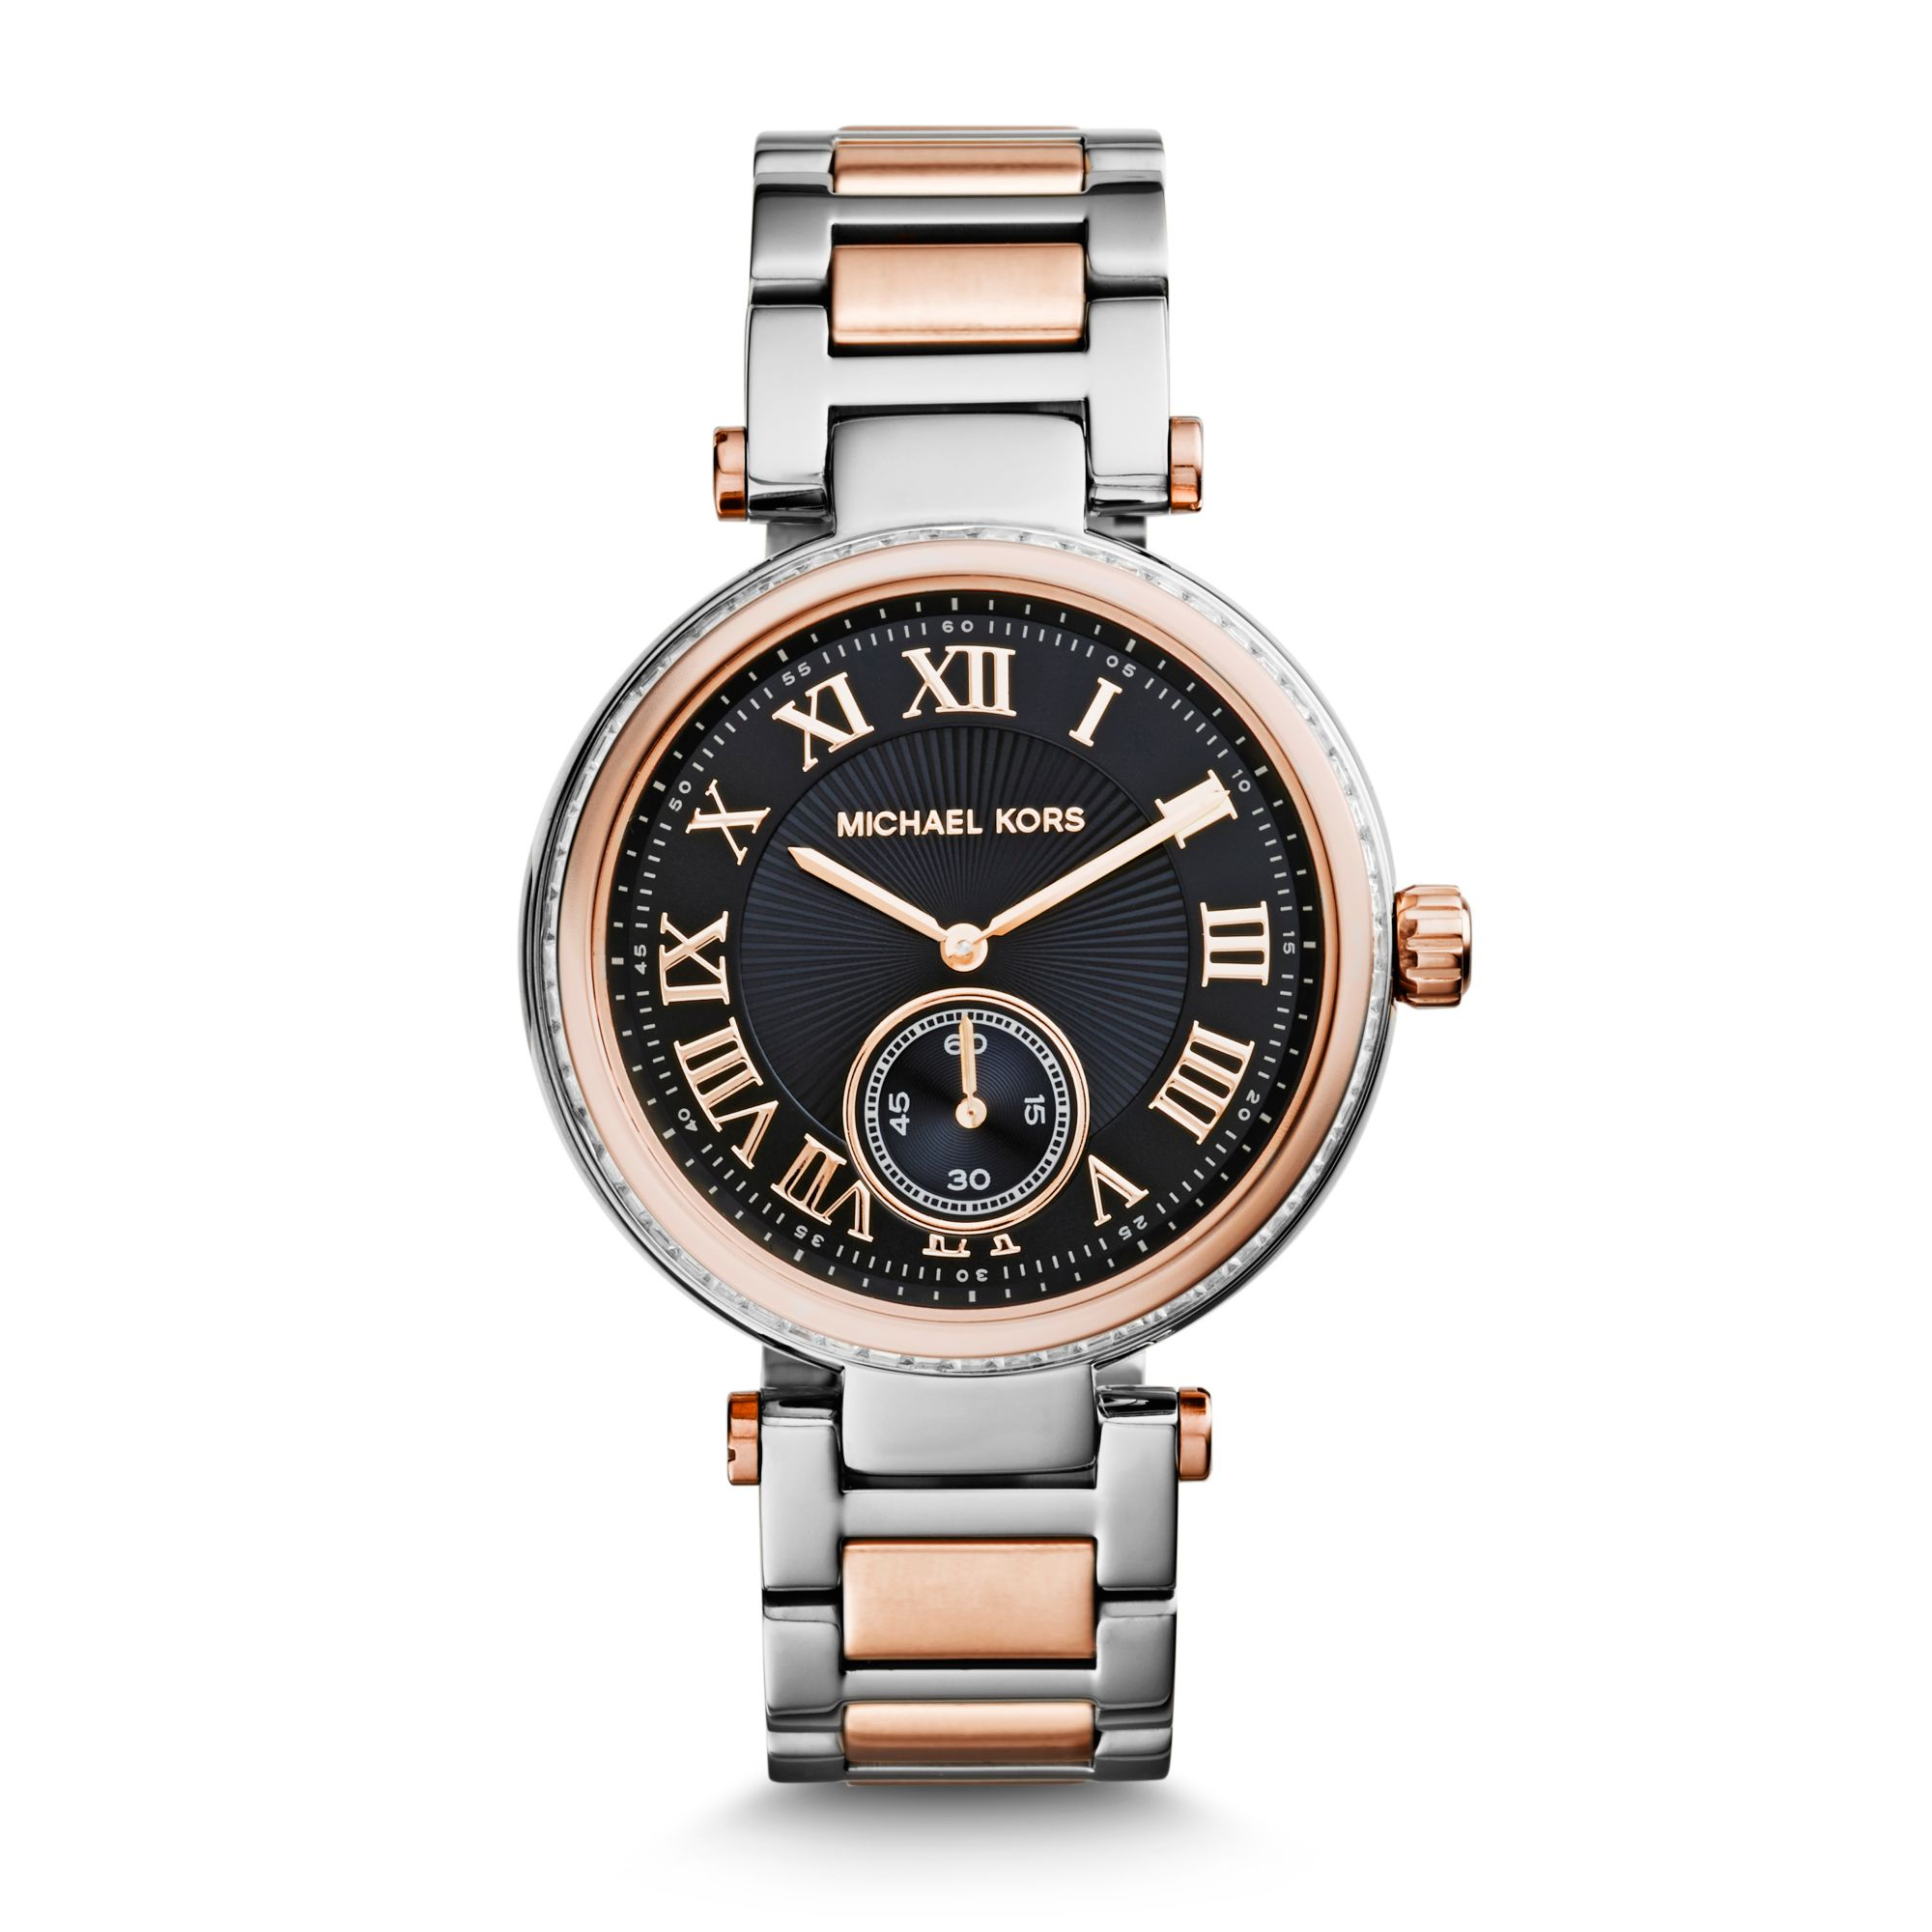 7f7e3dc8610ac Lyst - Michael Kors Skylar Silver And Rose Gold-Tone Bracelet Watch ...